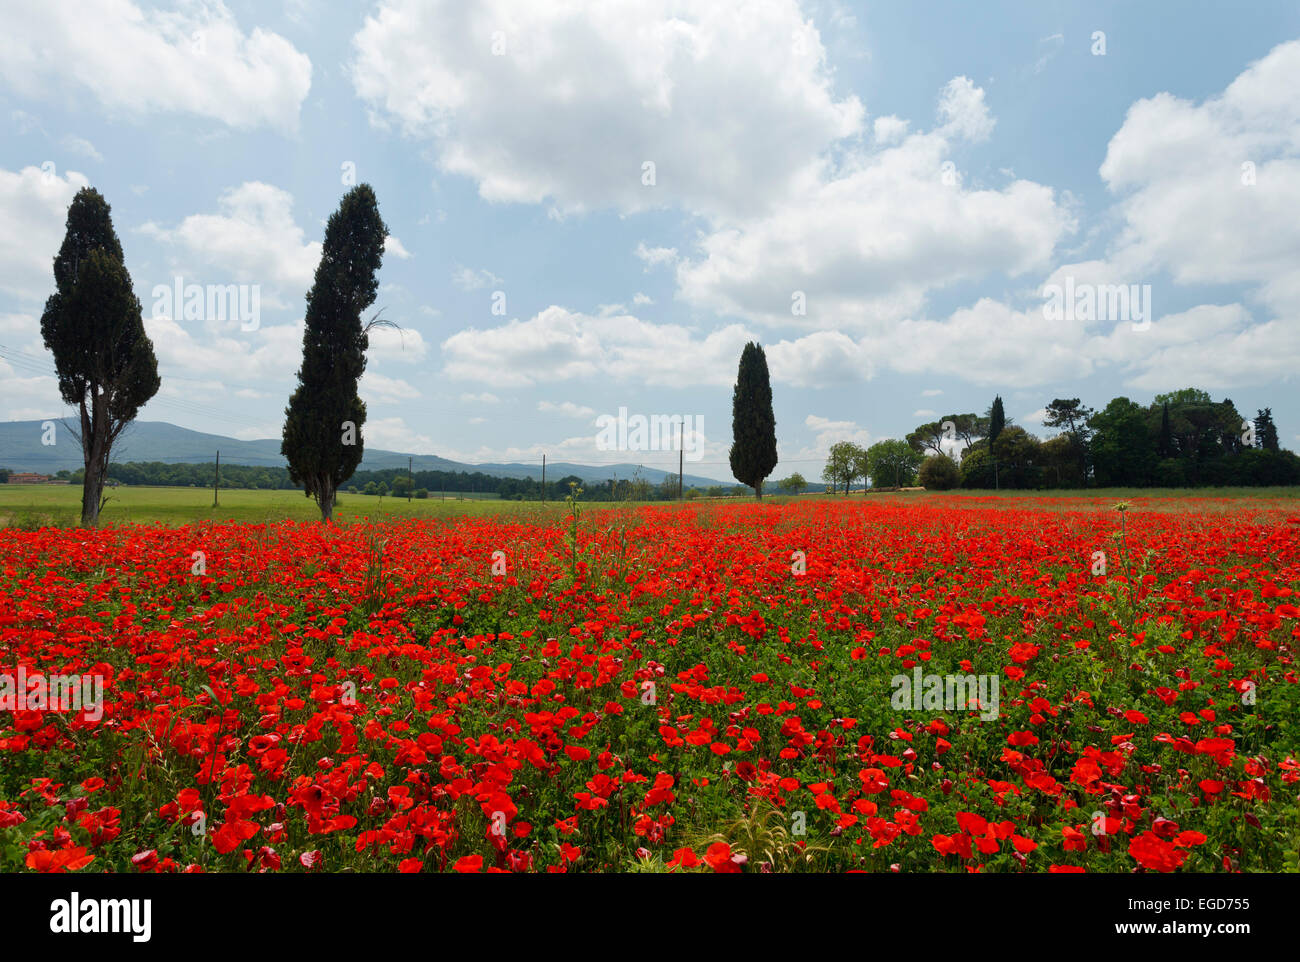 Cypresses in a red poppy field, near Colle di Val d Elsa, Tuscany, Italy, Europe - Stock Image